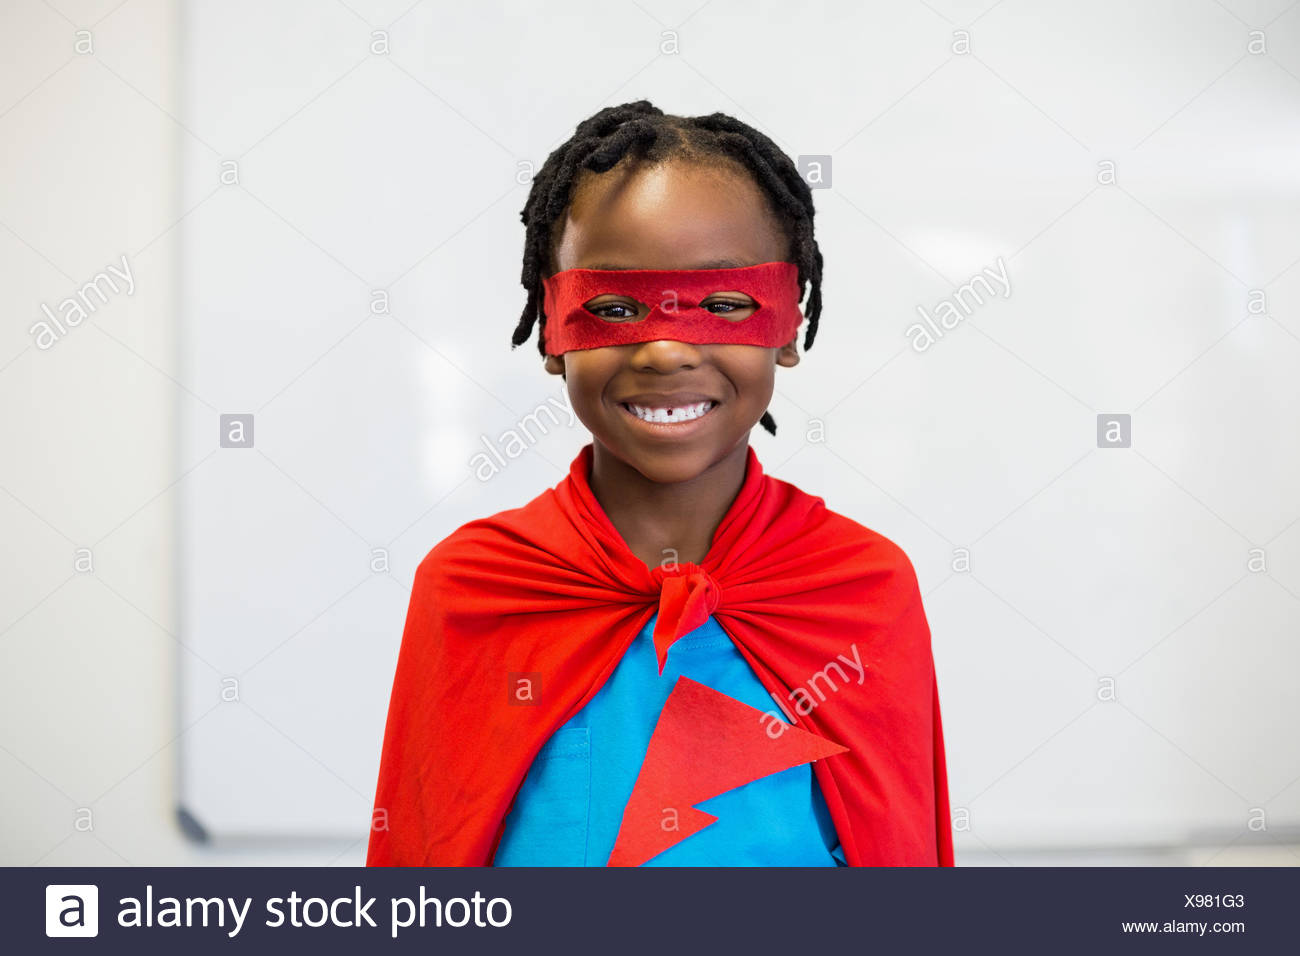 Smiling boy pretending to be a superhero - Stock Image